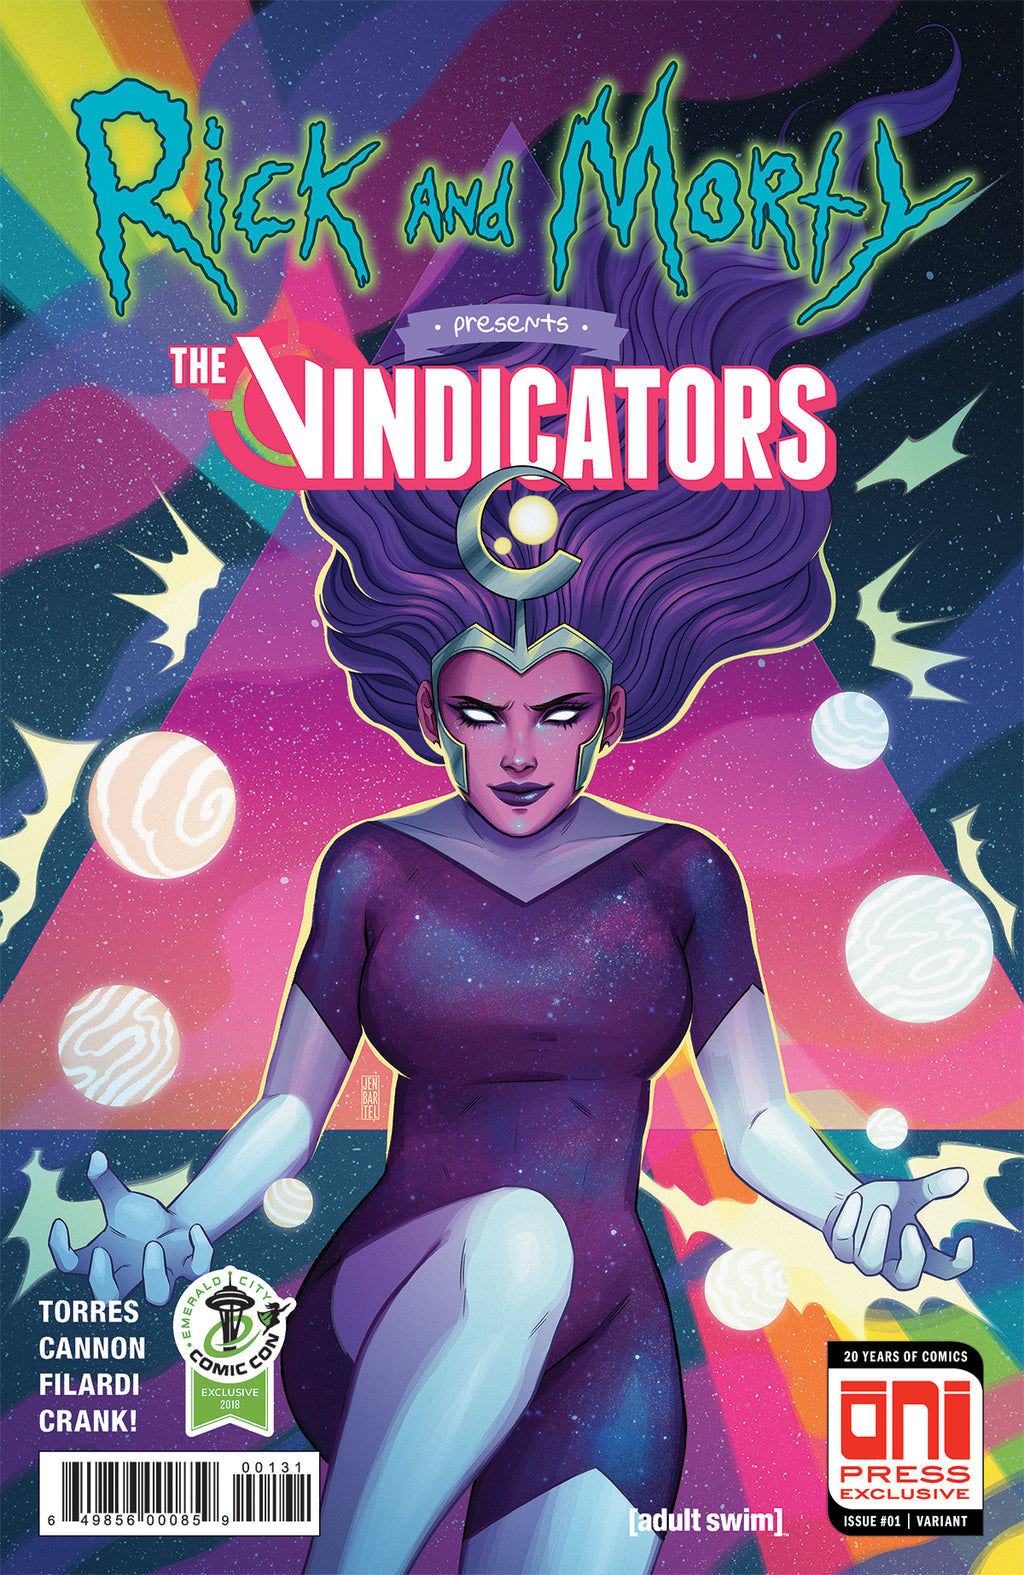 Rick and Morty Presents: The Vindicators #1 ECCC variant